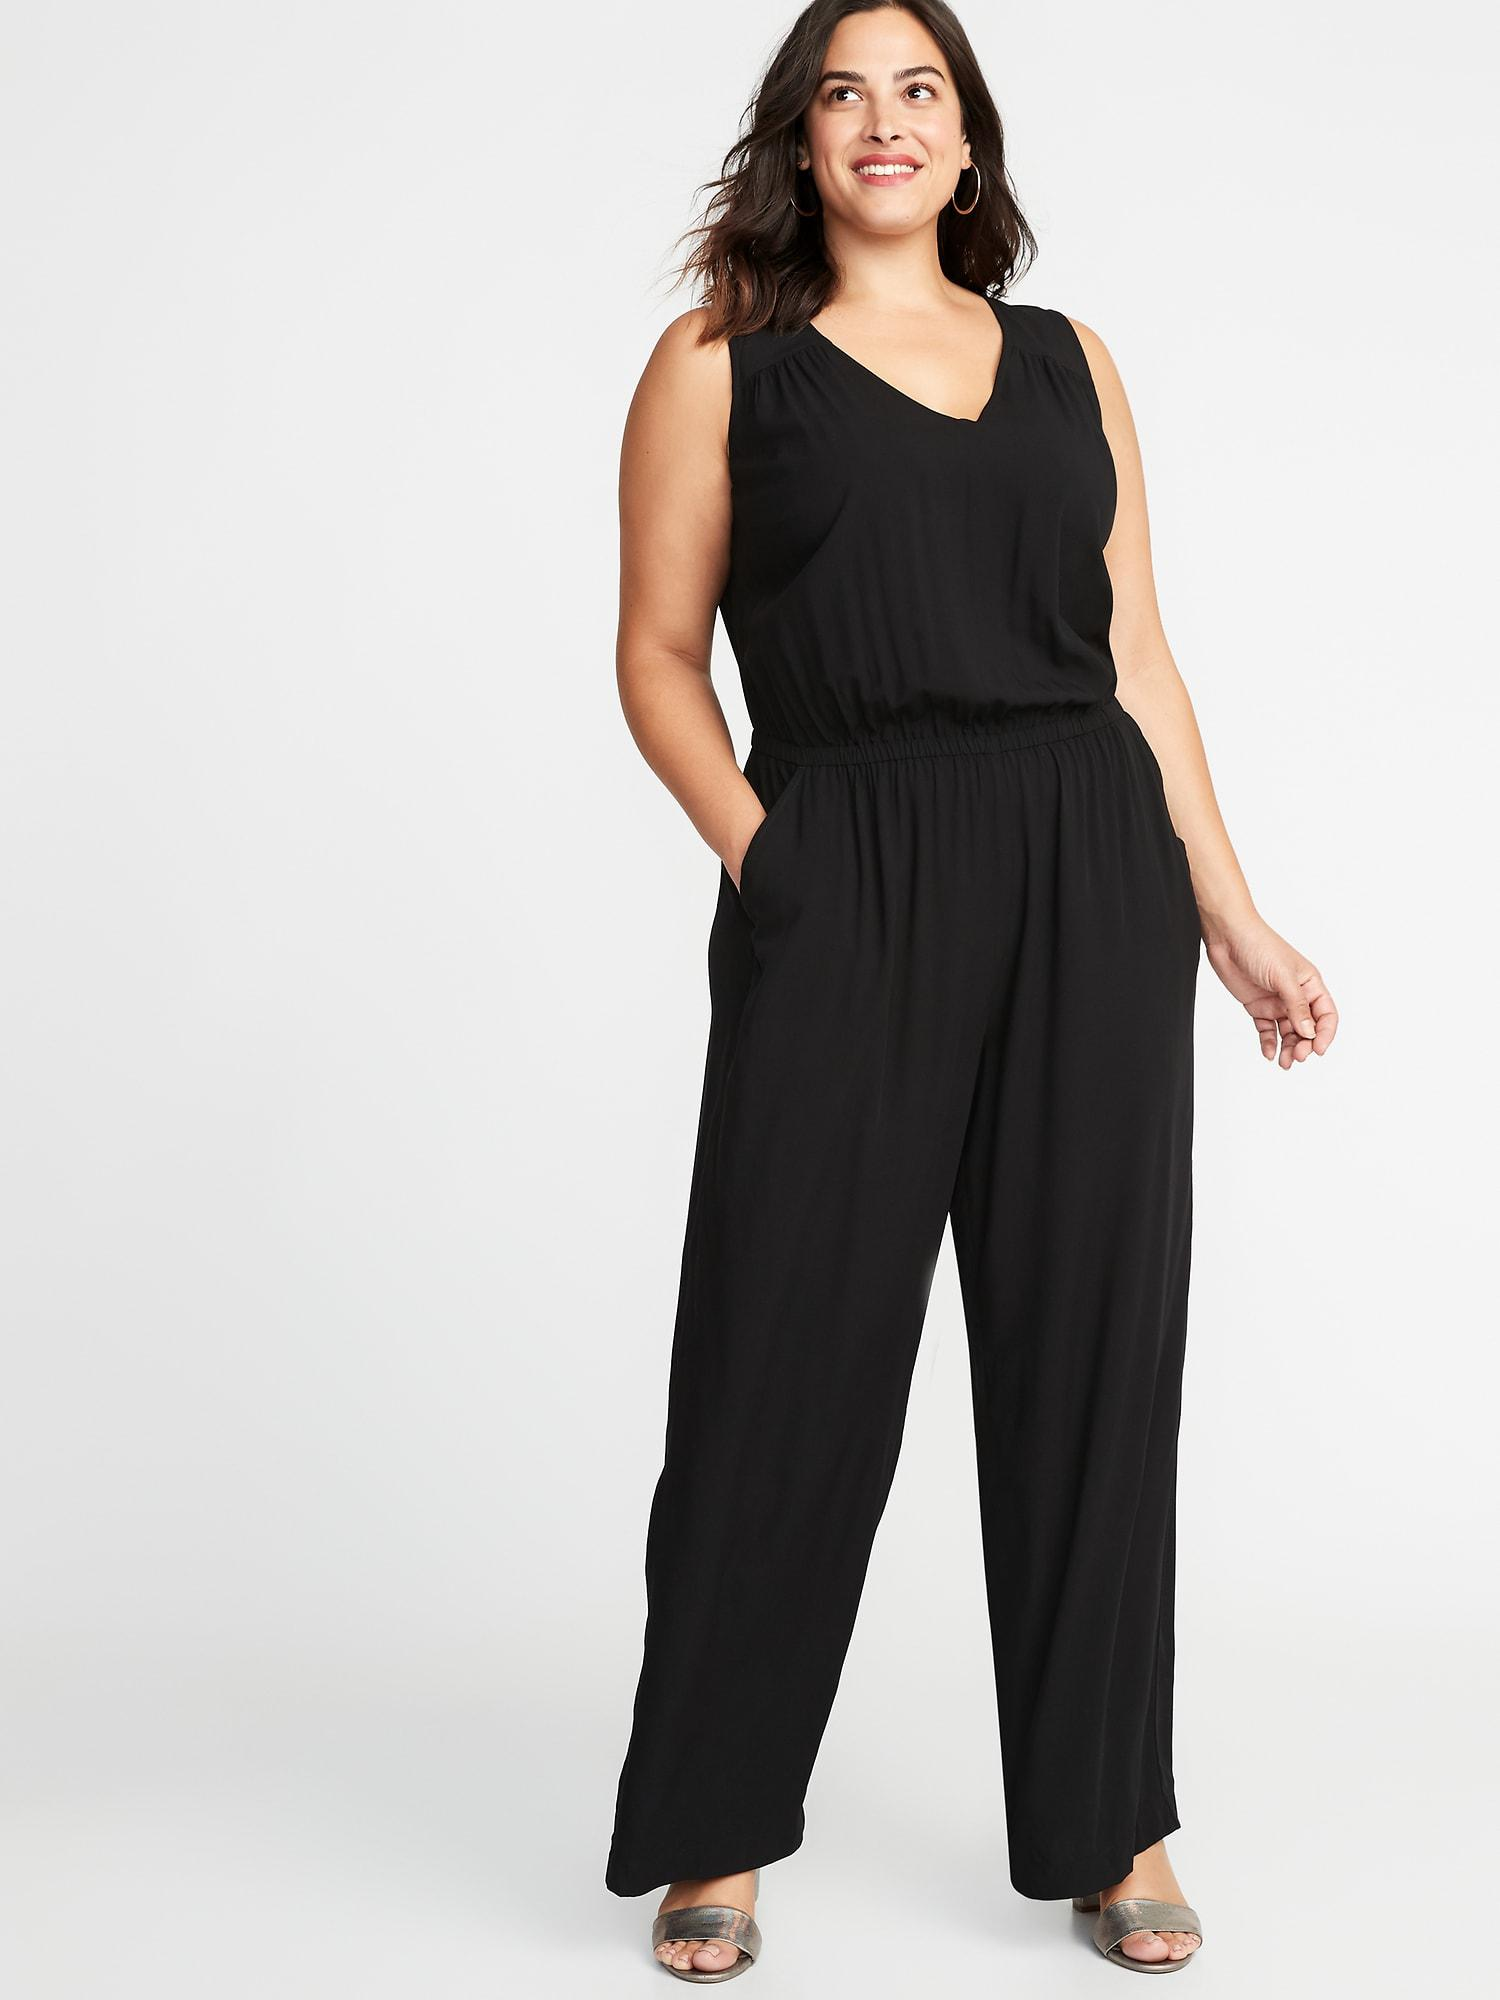 4e7924c8c37 Lyst - Old Navy Waist-defined Plus-size Sleeveless Jumpsuit in Black